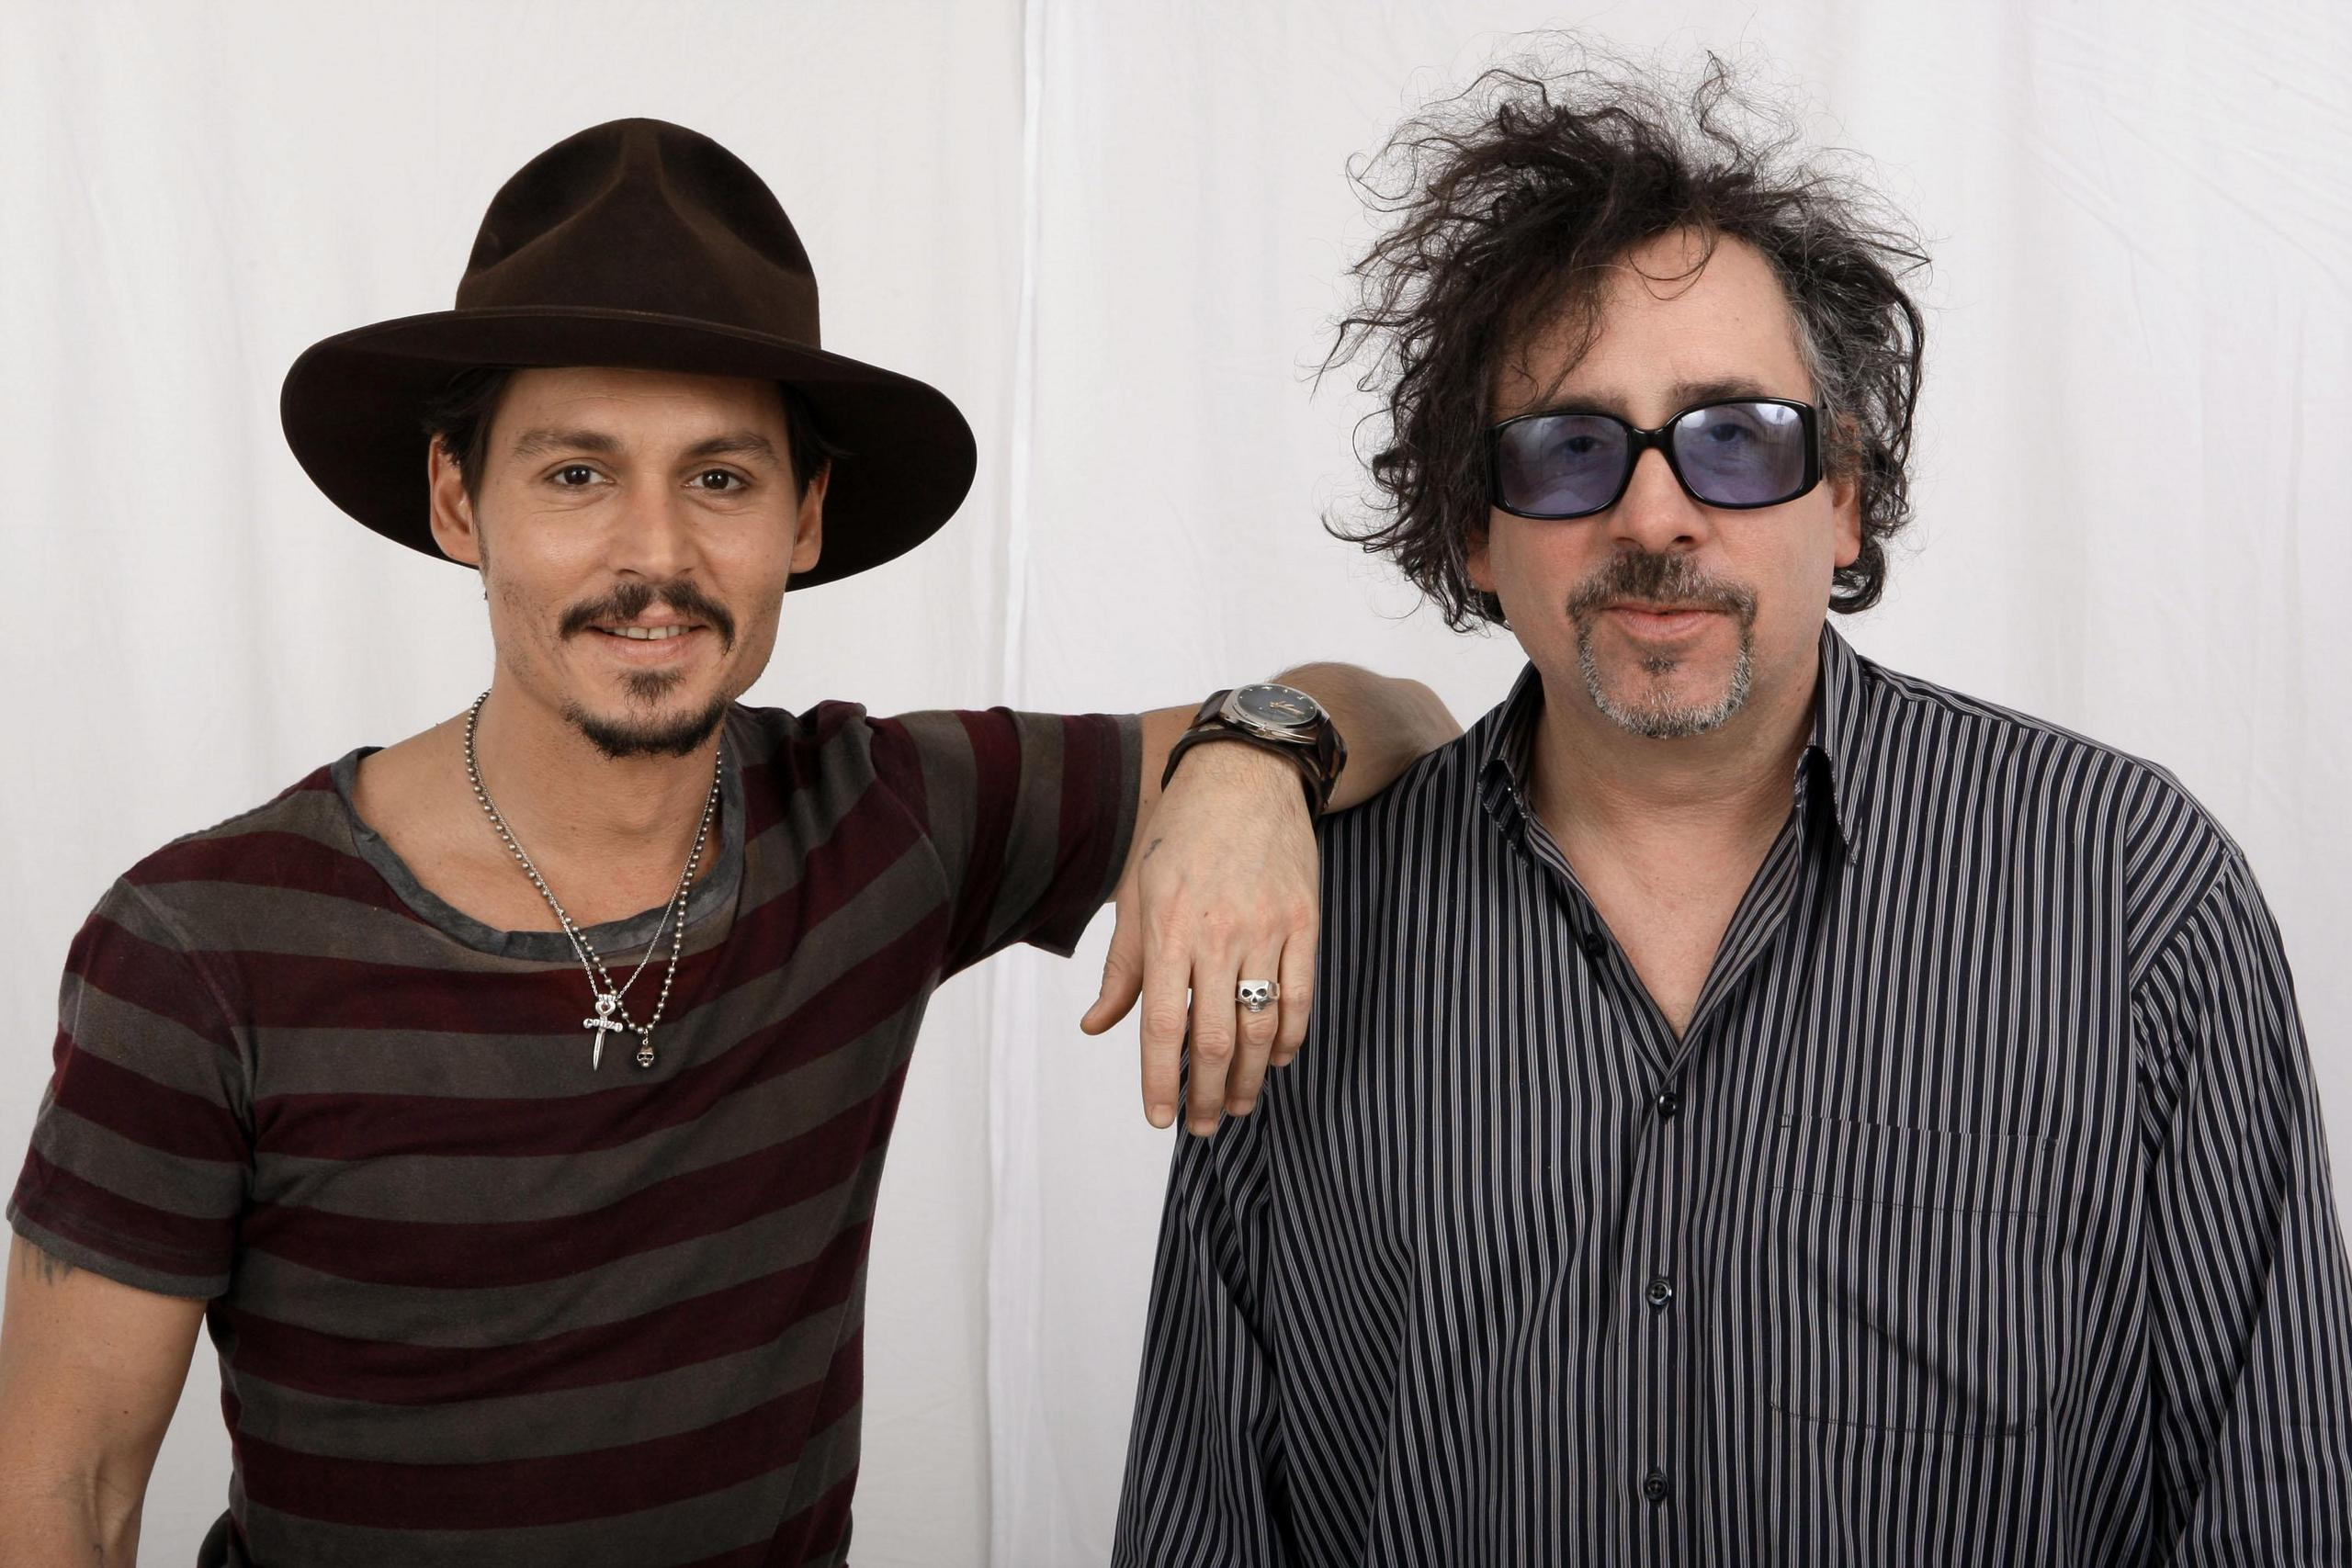 Johnny-Tim-johnny-depp-tim-burton-films-5698735-2560-1707 Nerdipop